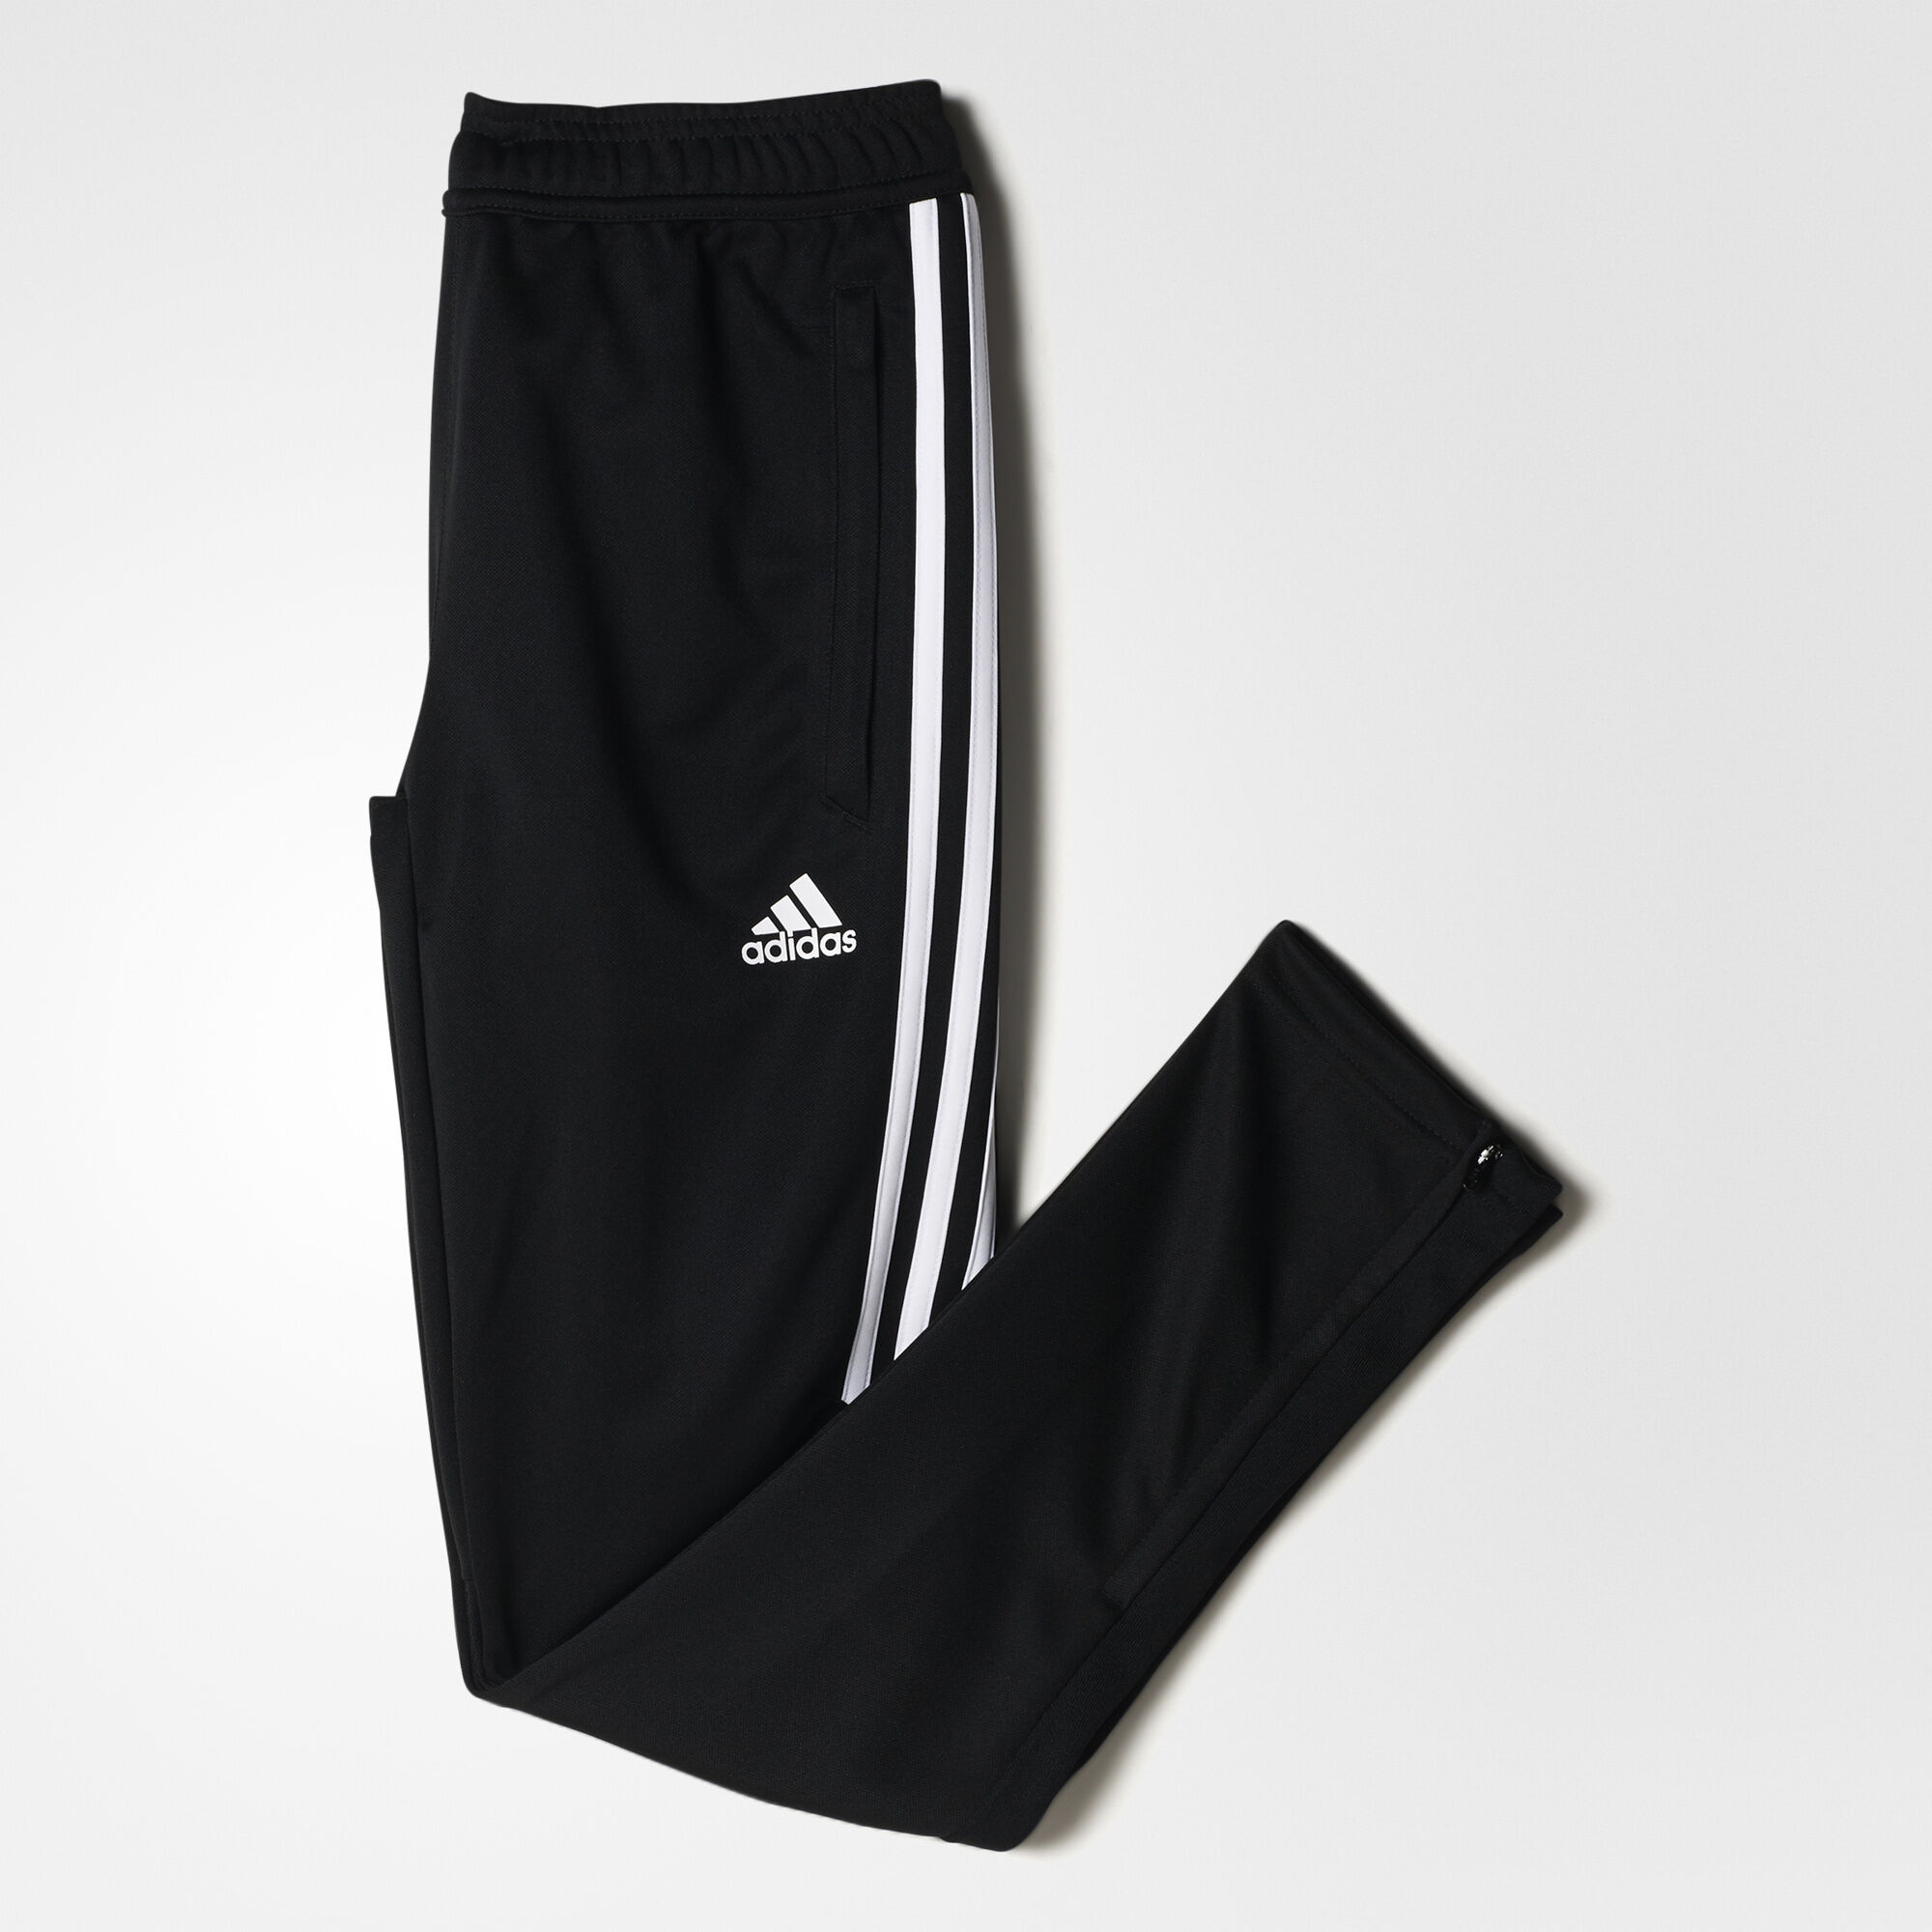 Image result for adidas pants